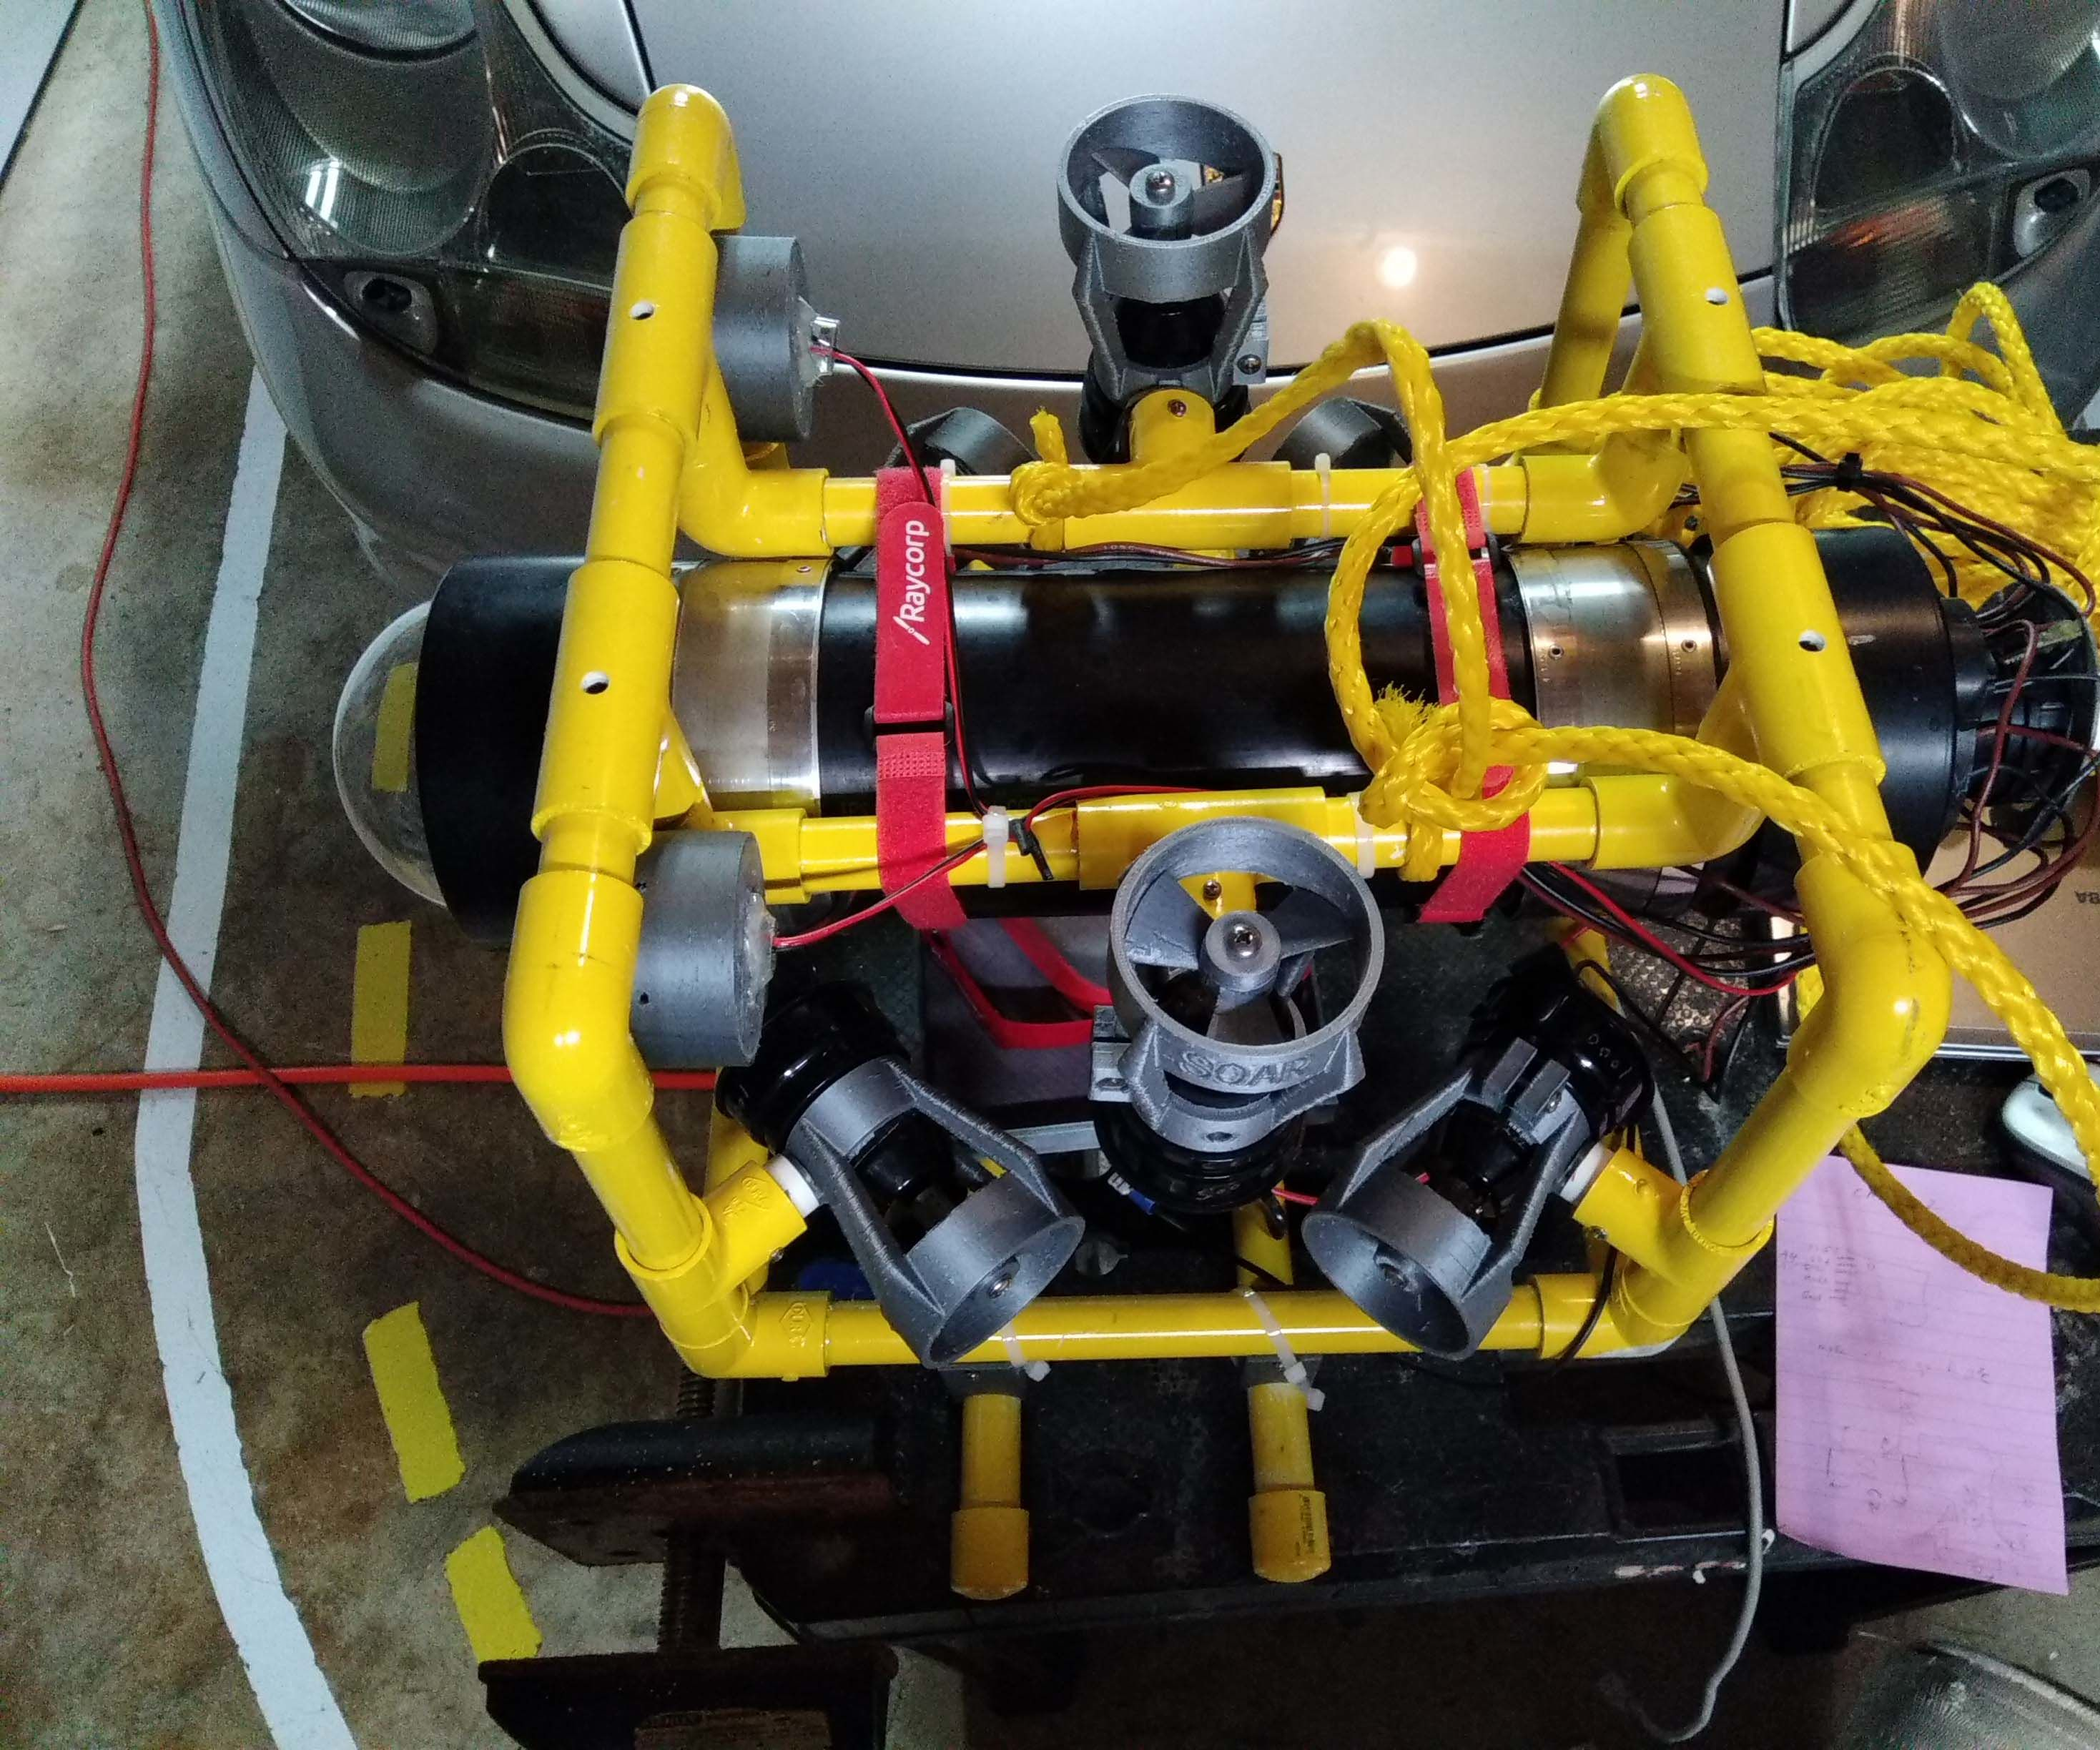 DIY Submersible ROV: 8 Steps (with Pictures)